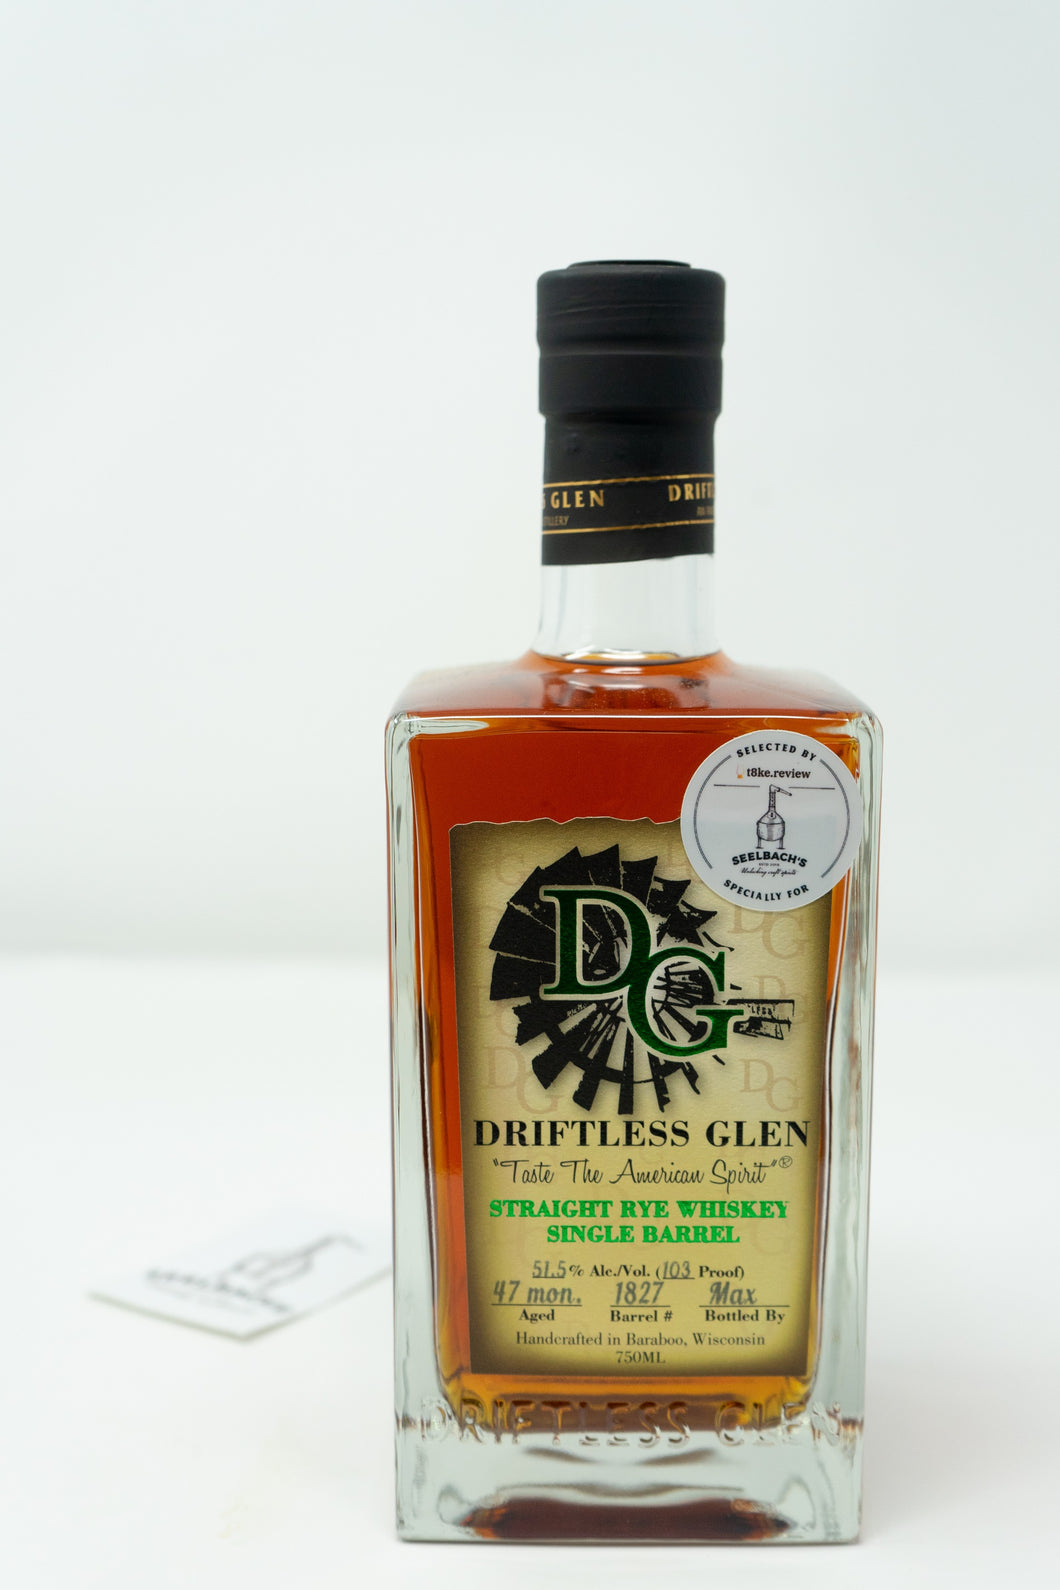 Driftless Glen Distillery Single Barrel Rye - T8ke/Seelbach's #1827